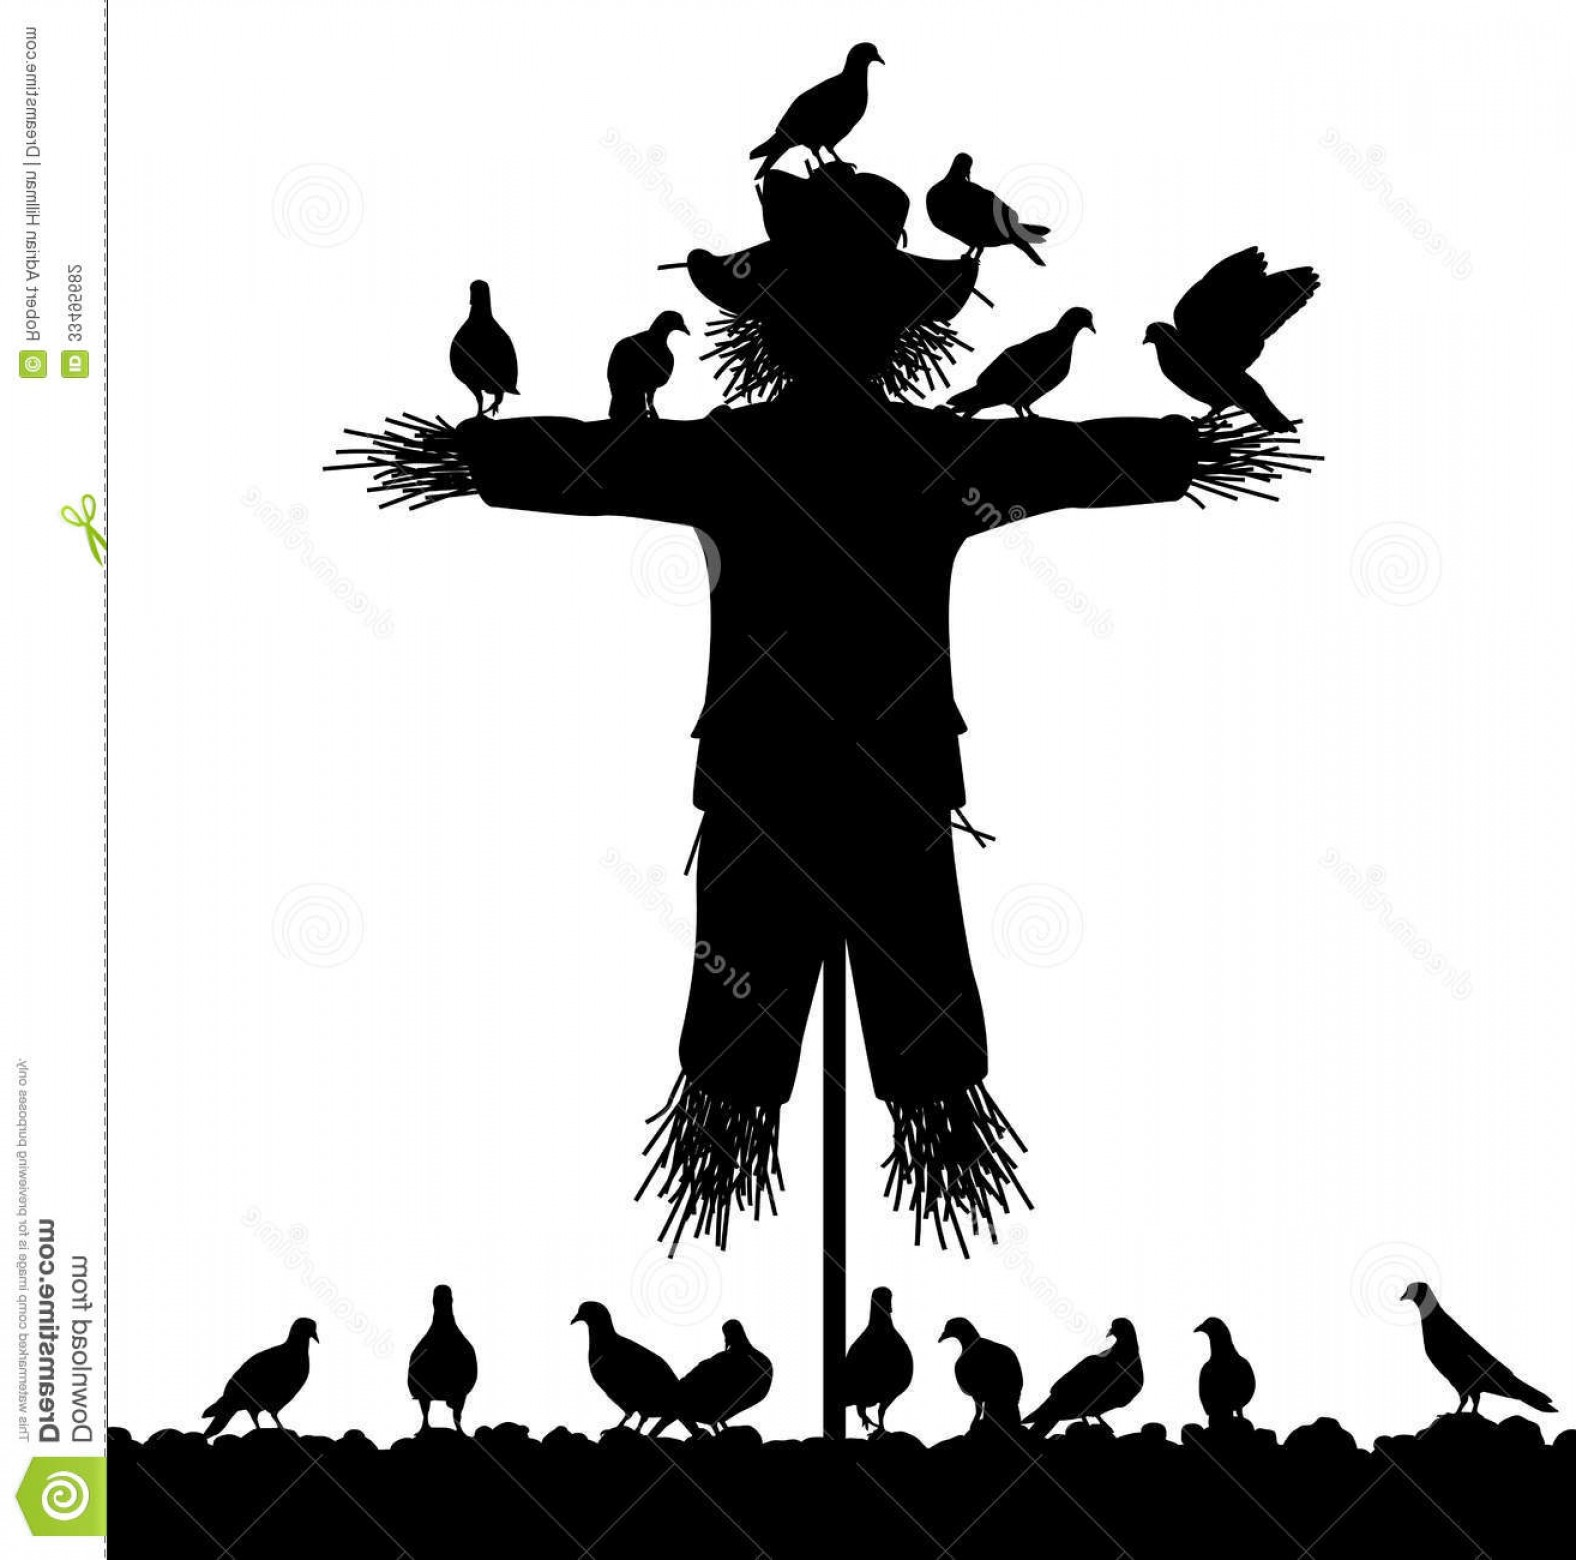 Scarecrow Vector Art: Stock Photography Scarecrow Editable Vector Silhouette Flock Pigeons All Figures As Separate Objects Image